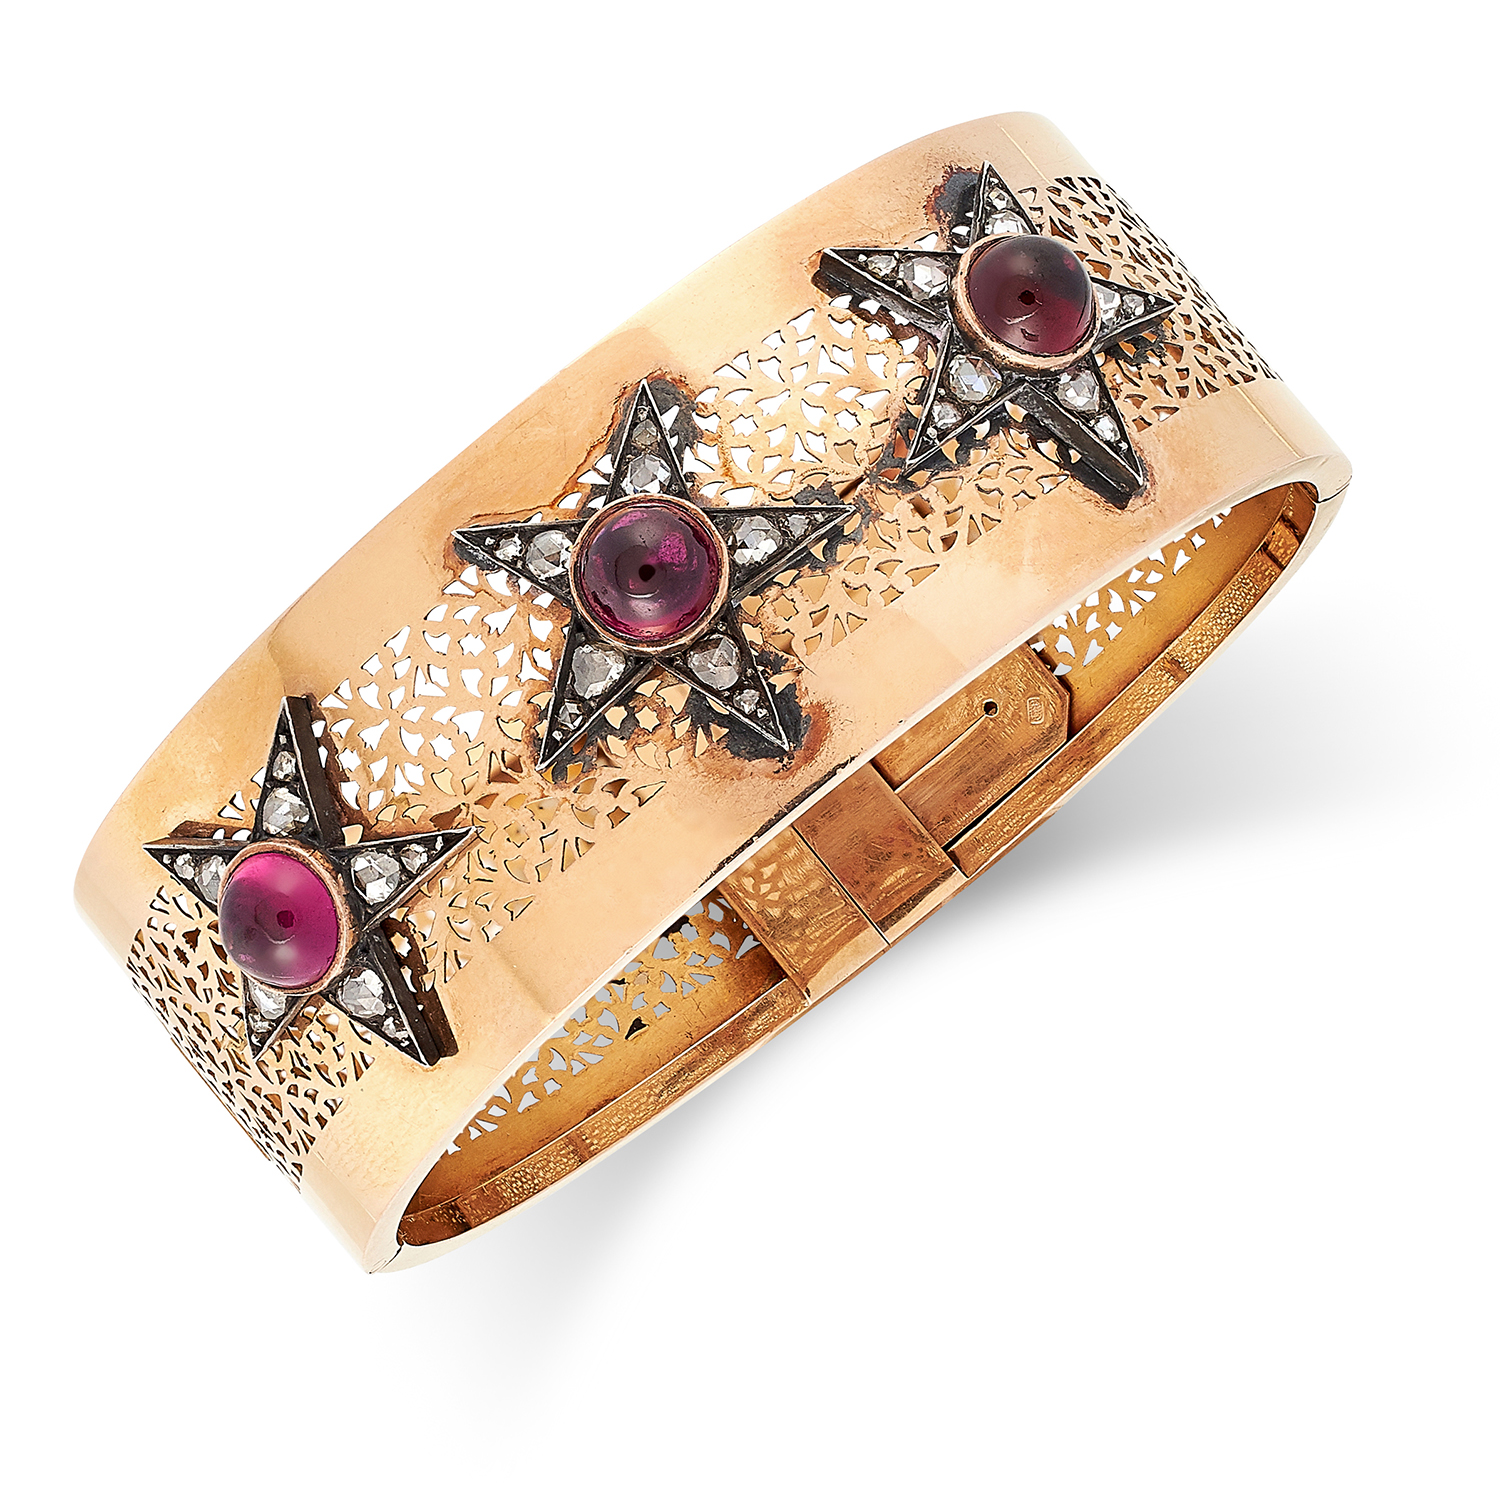 A RUBY AND DIAMOND BANGLE set with cabochon garnets and rose cut diamonds in star motif, 6cm inner